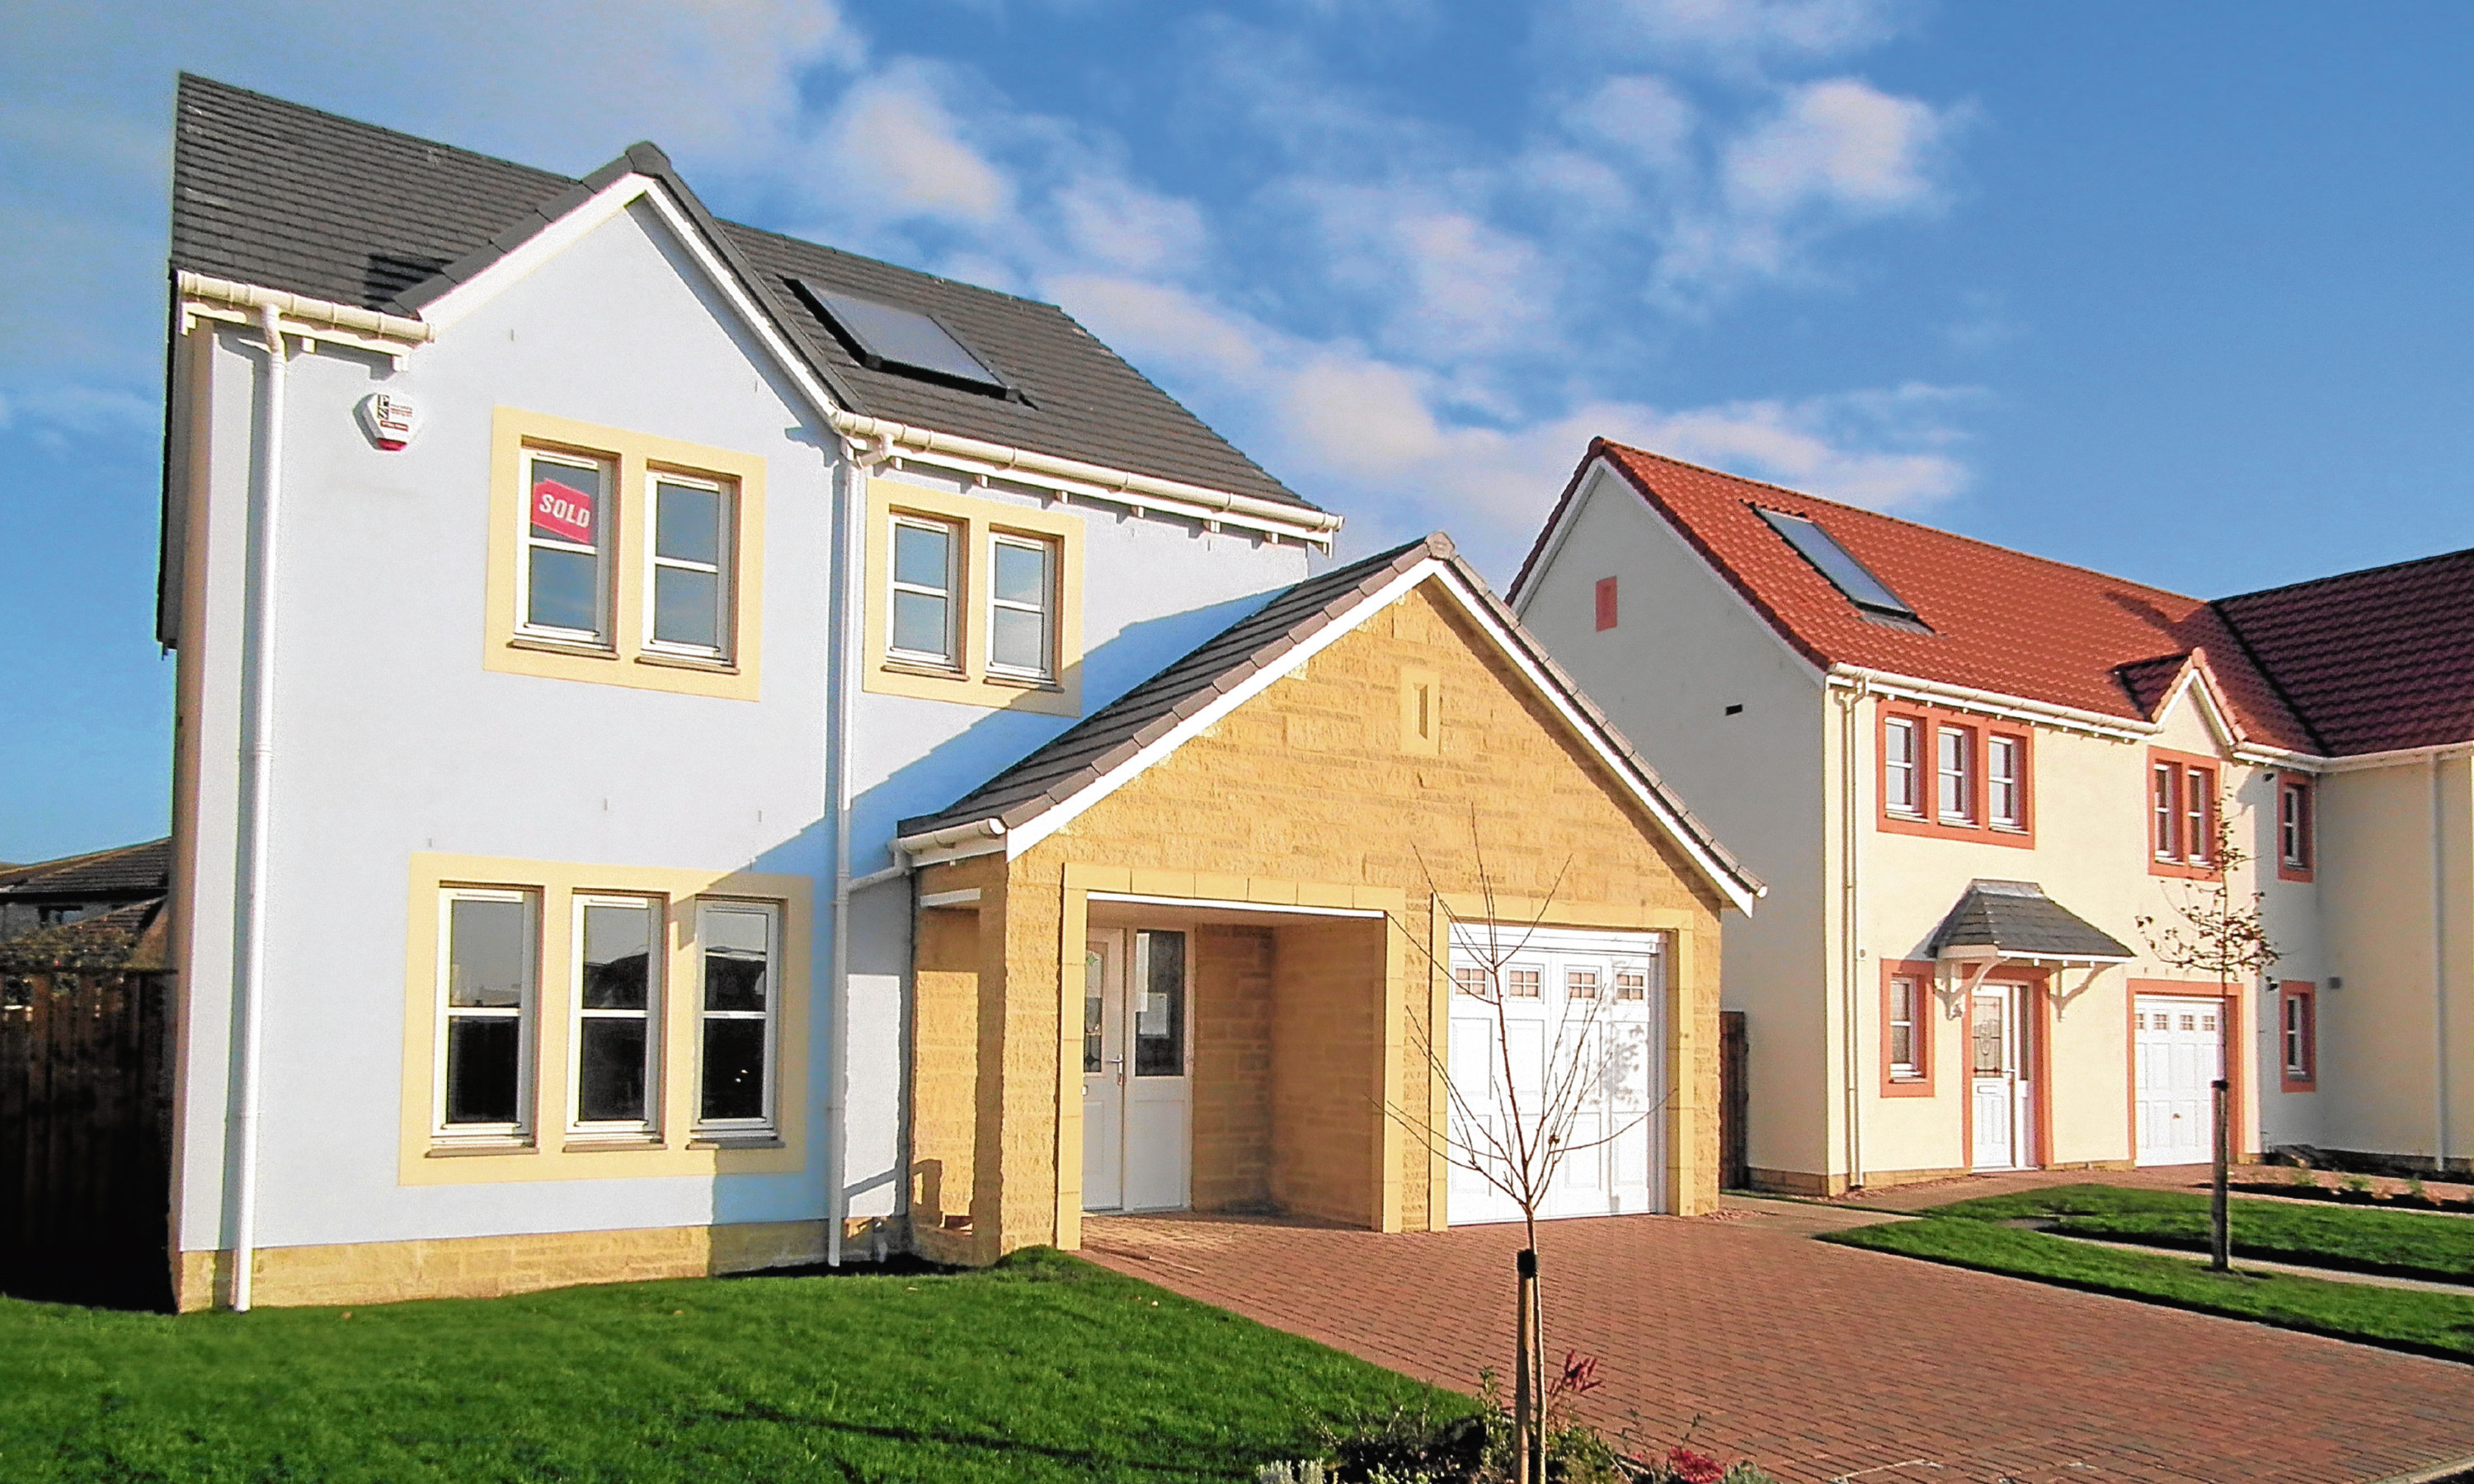 Muir Group homes at Silverdykes, Anstruther